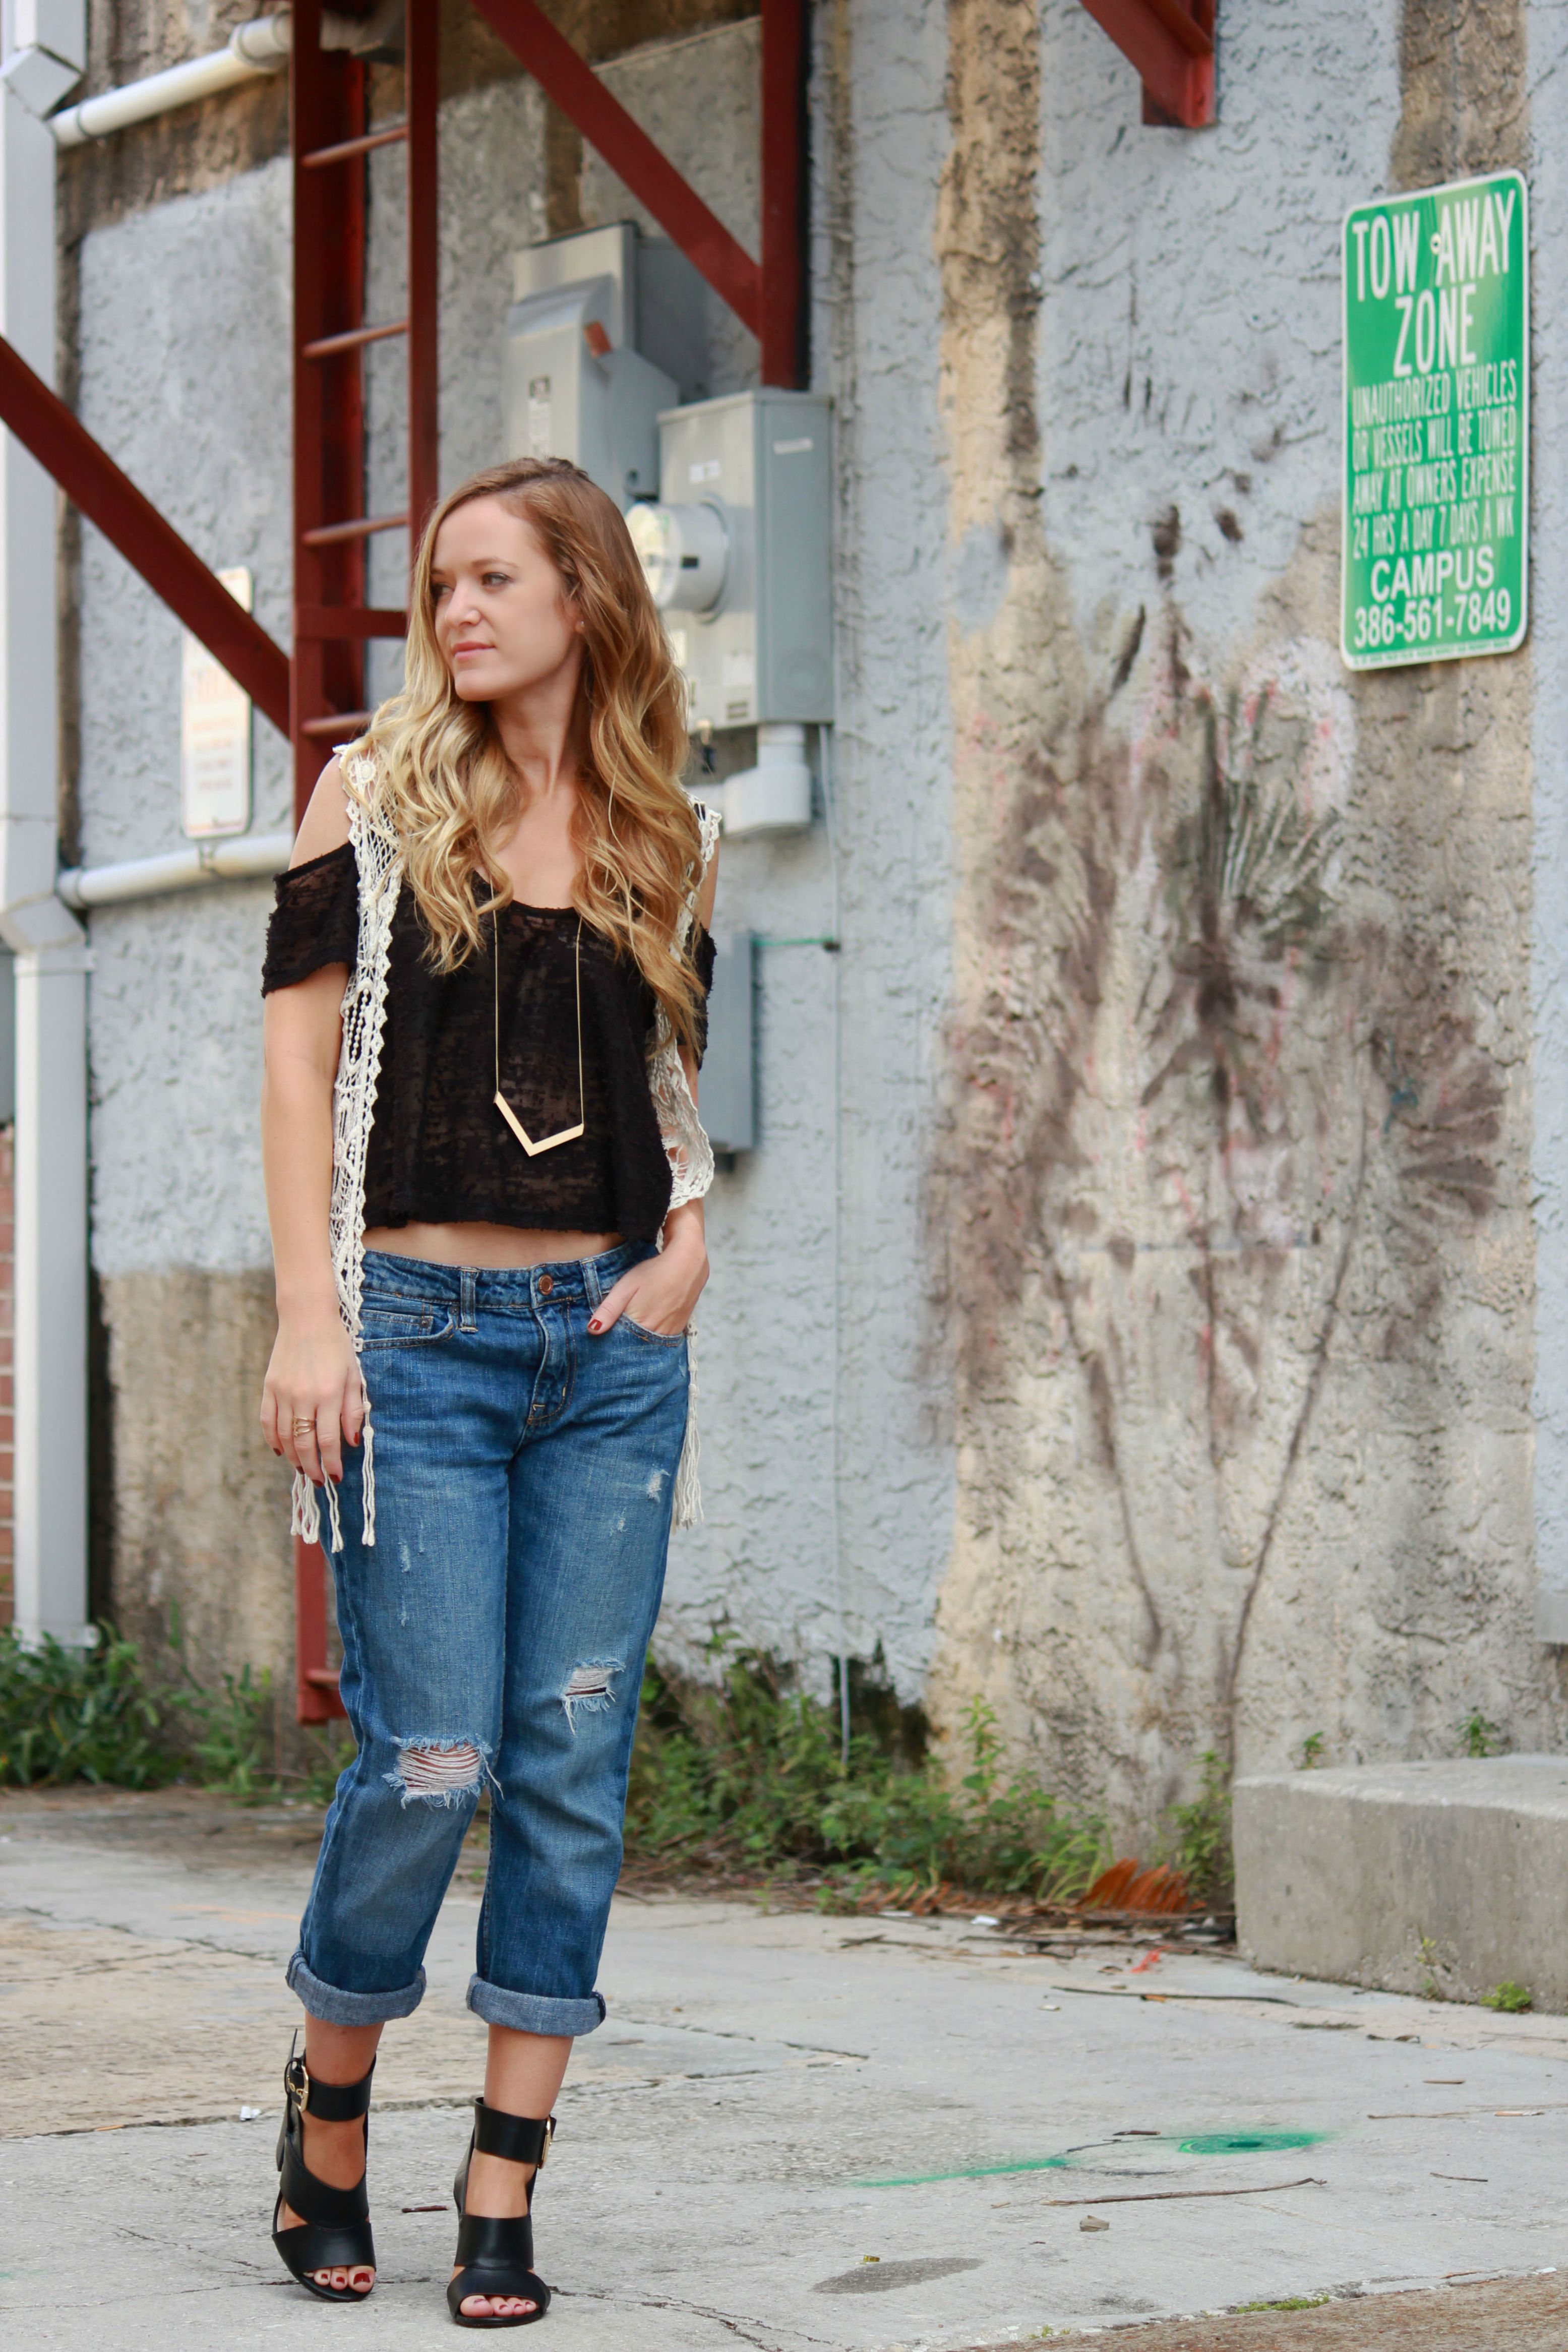 florida, orlando fashion blogger styling fringe vest from sugar love boutique, american eagle boyfriend jeans and forever 21 heels for a casual fall outfit